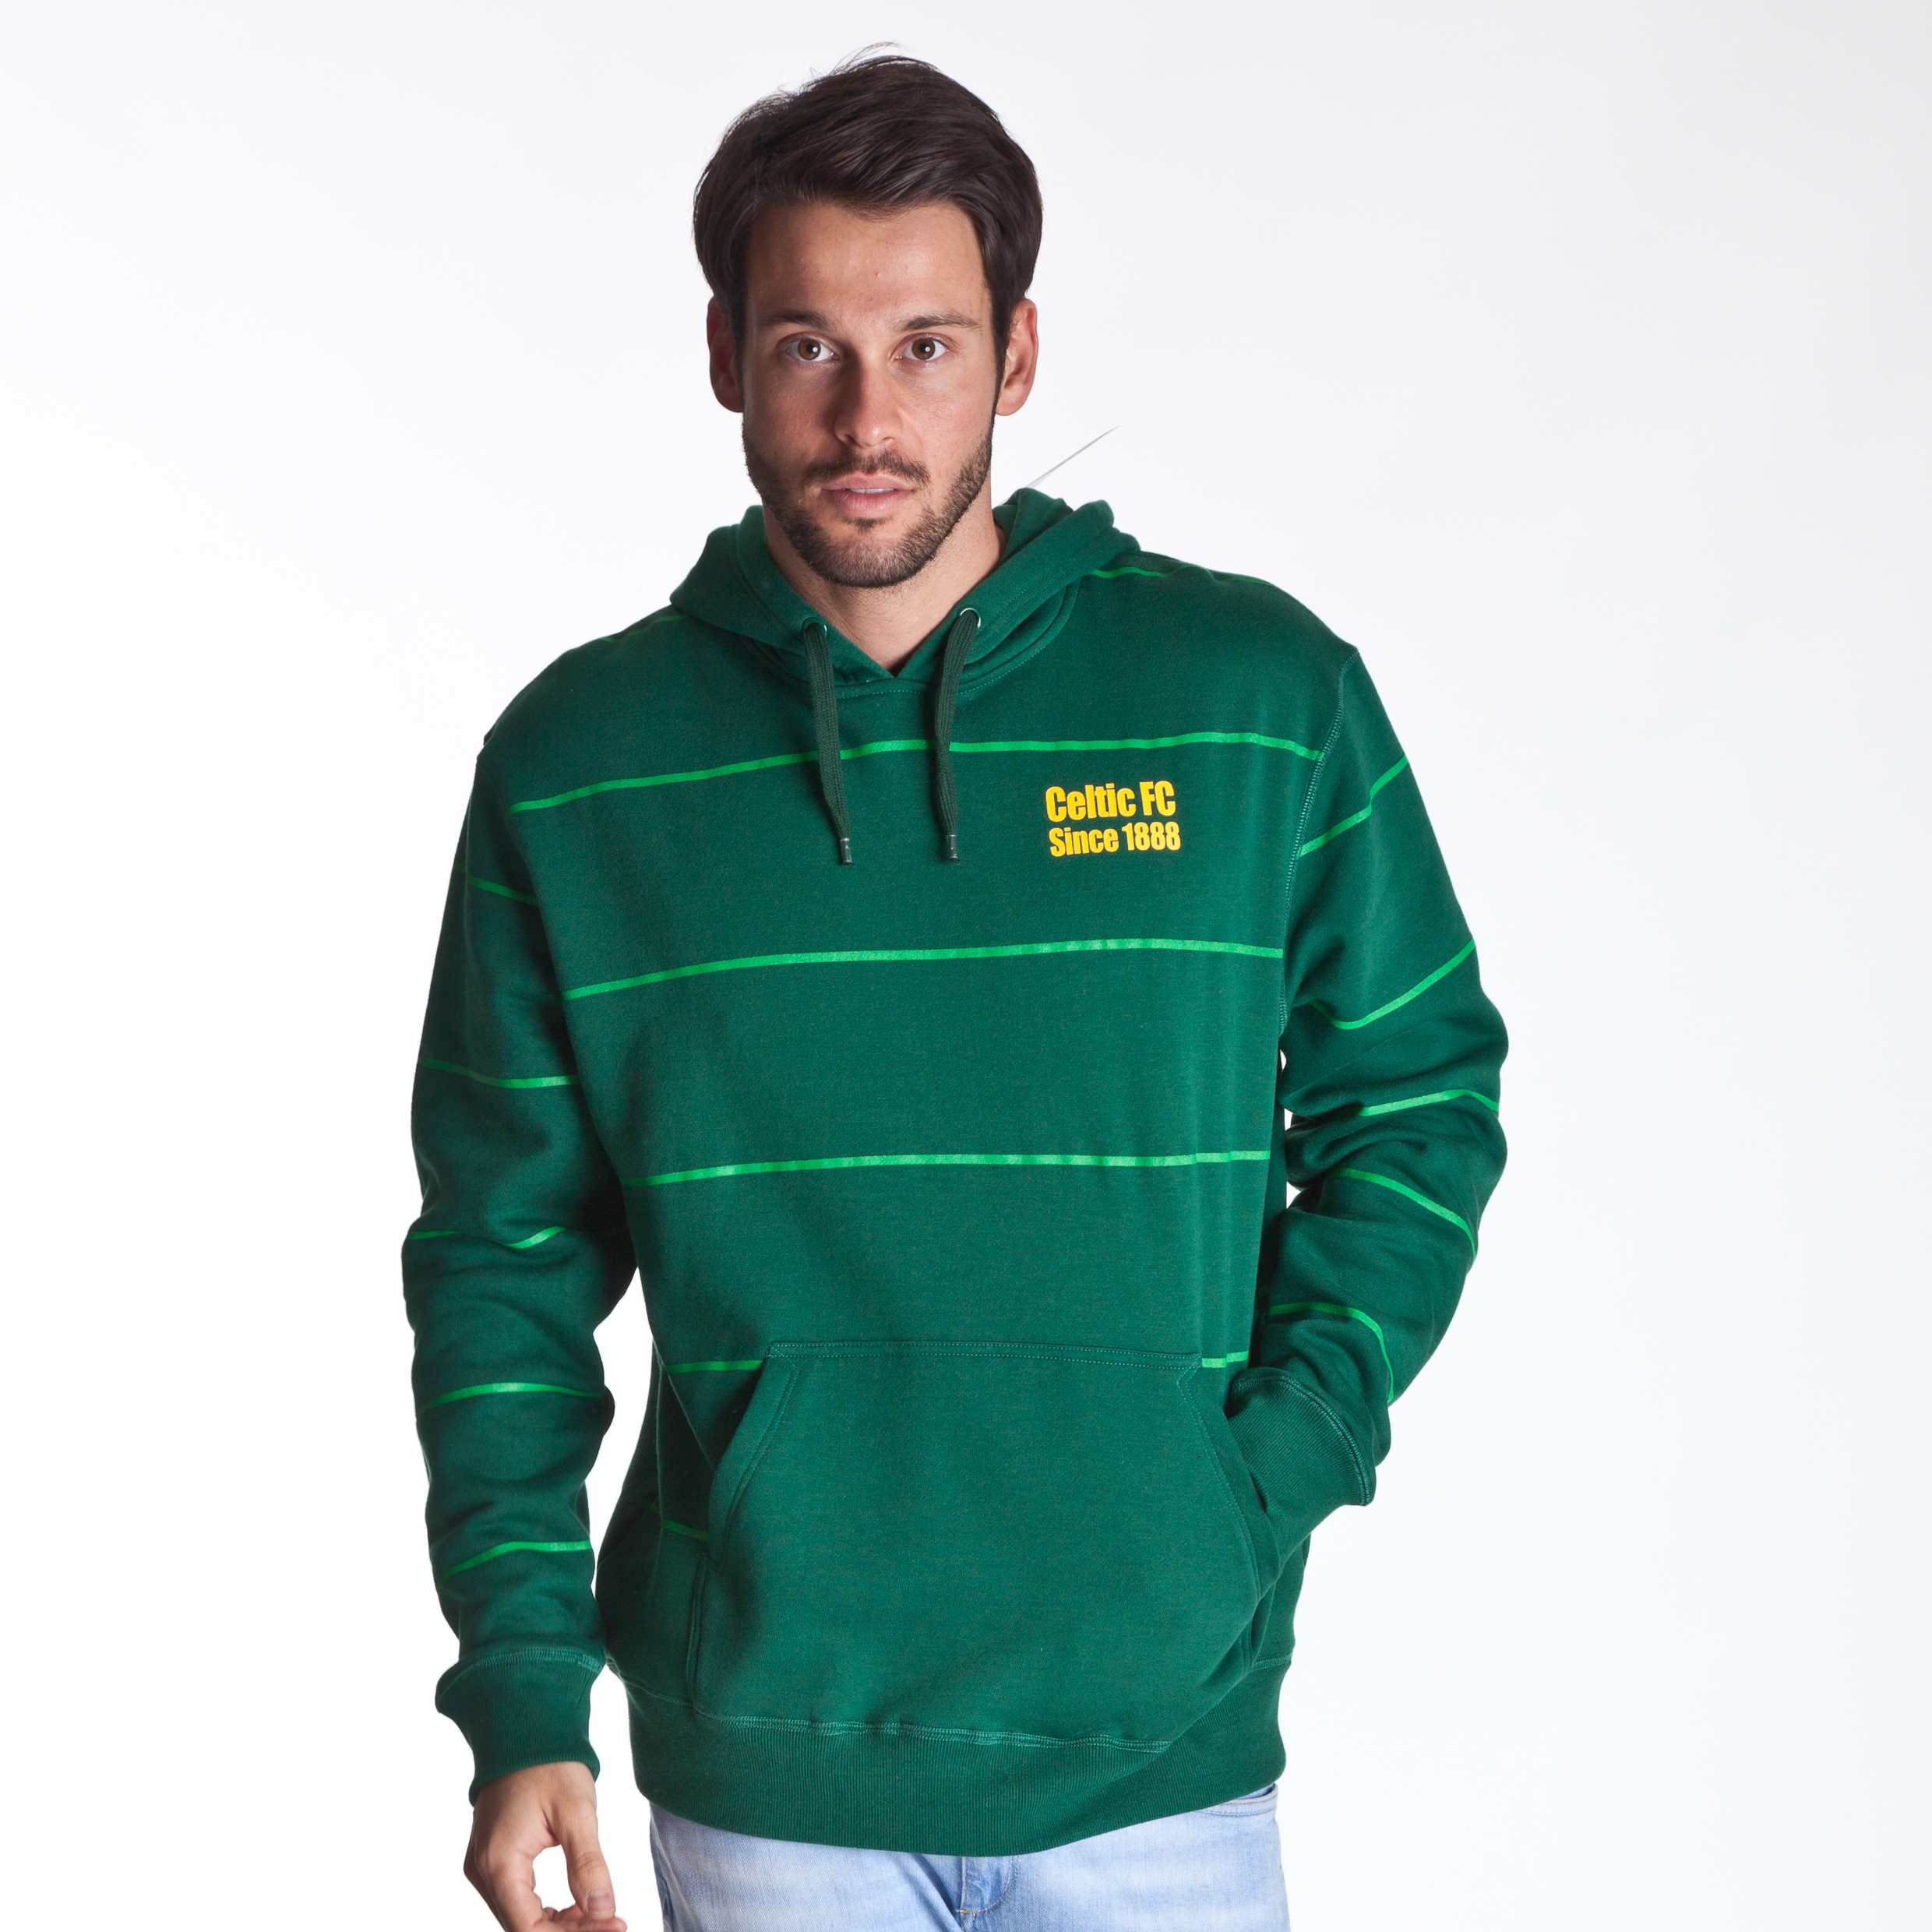 Celtic Essentials Striped Hoody  - Mens Green